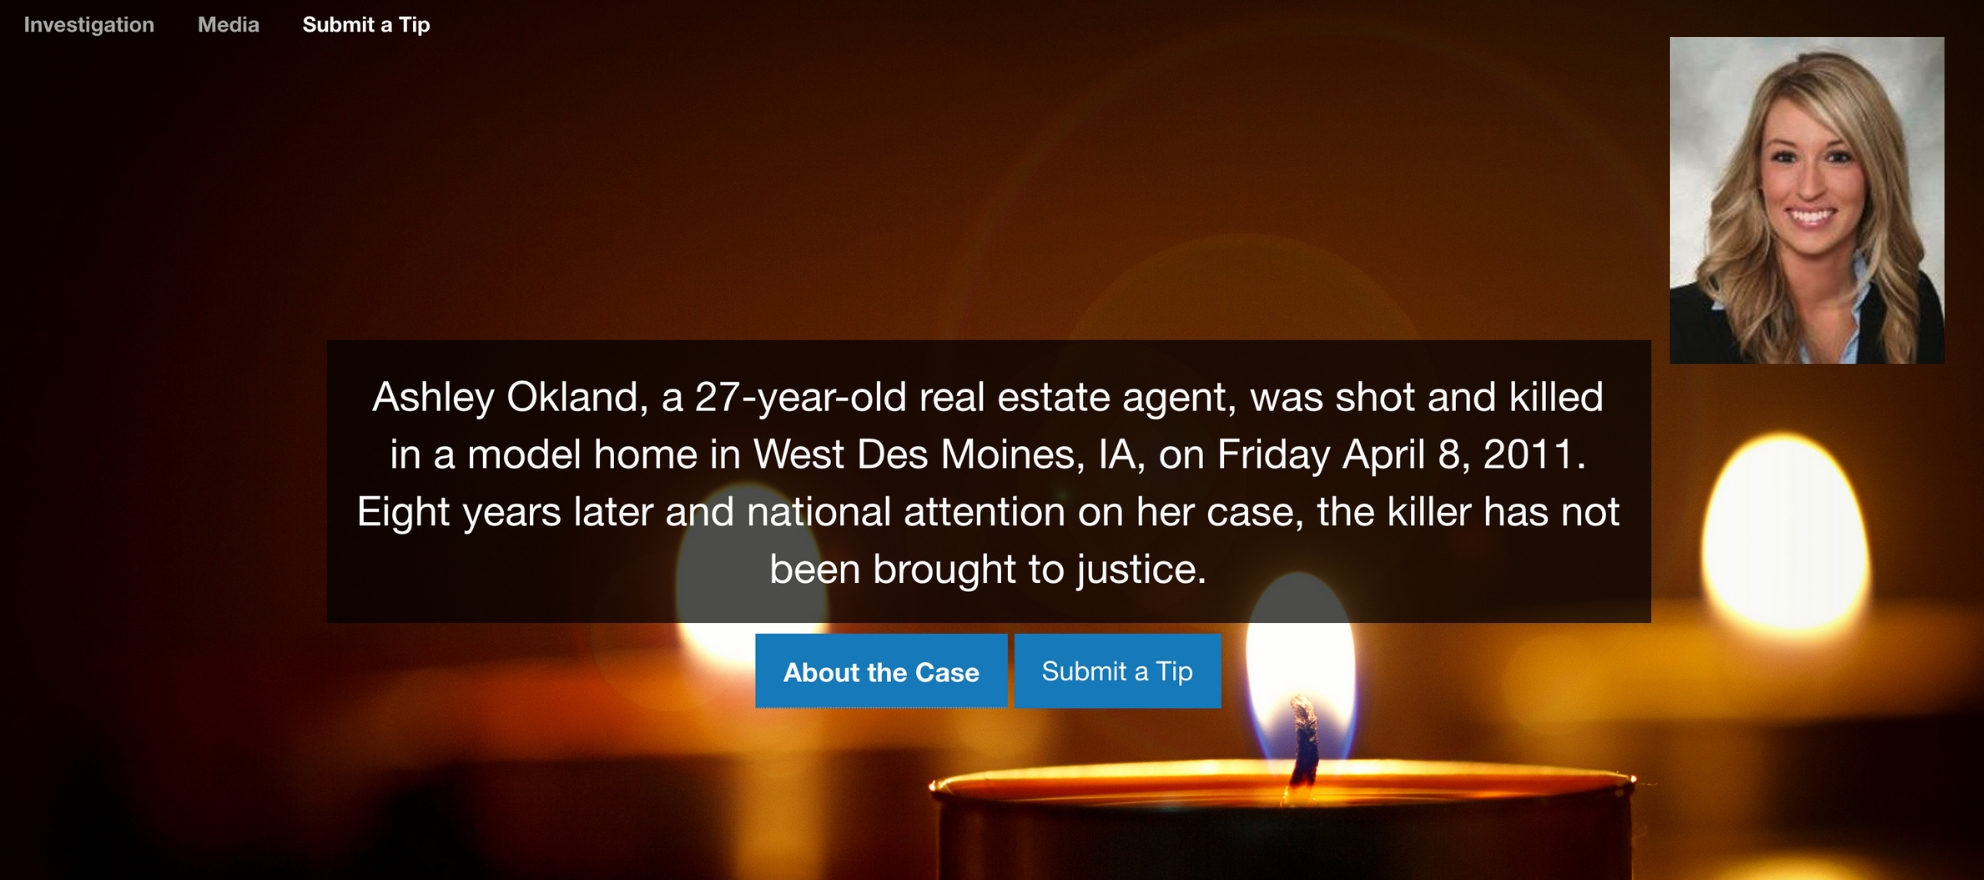 Police launch website asking for tips on Realtor's unsolved murder